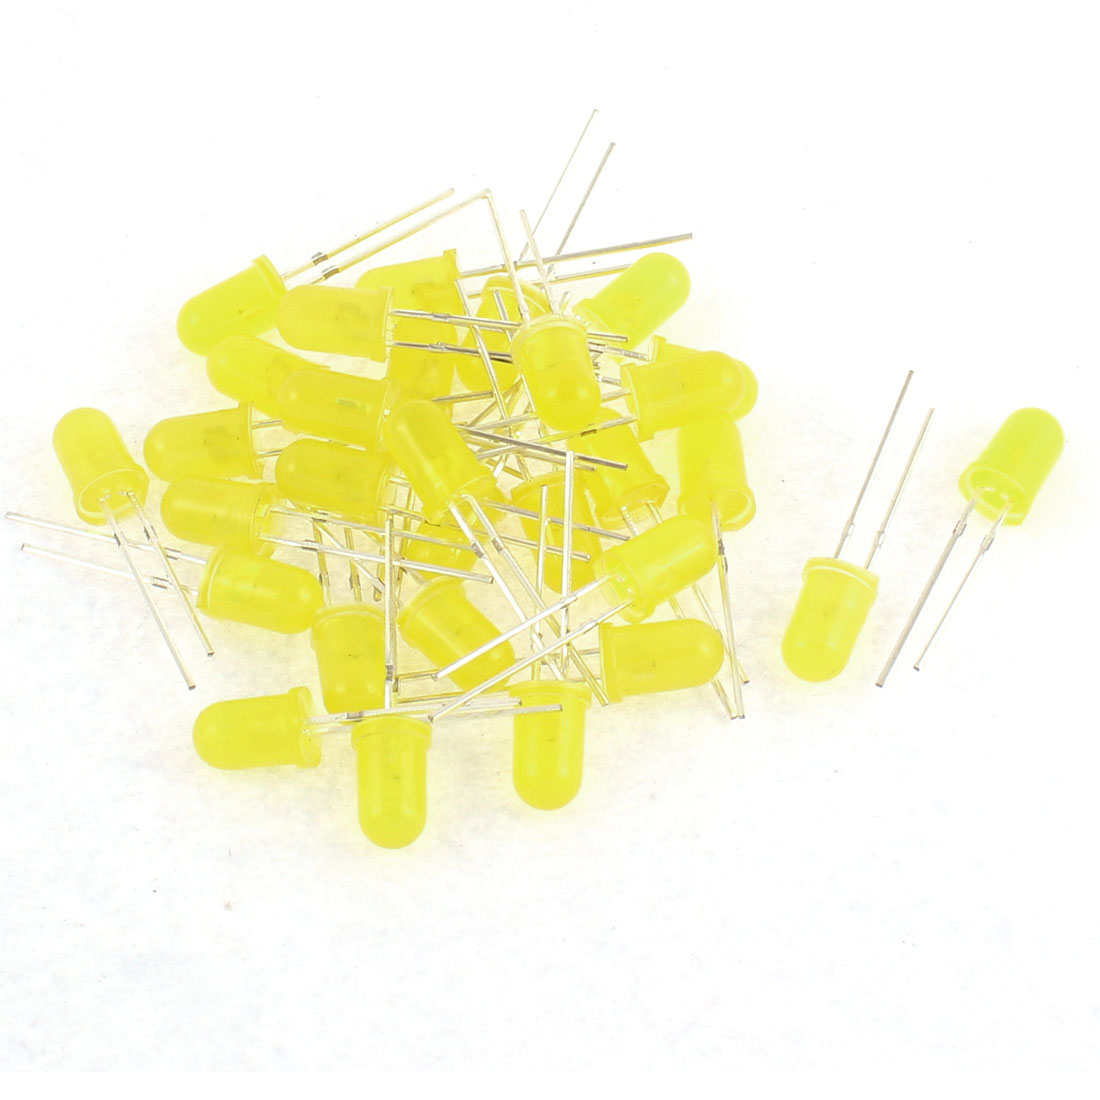 30pcs 5mm Round Color Yellow Light-emitting Diode DIY LEDs Component